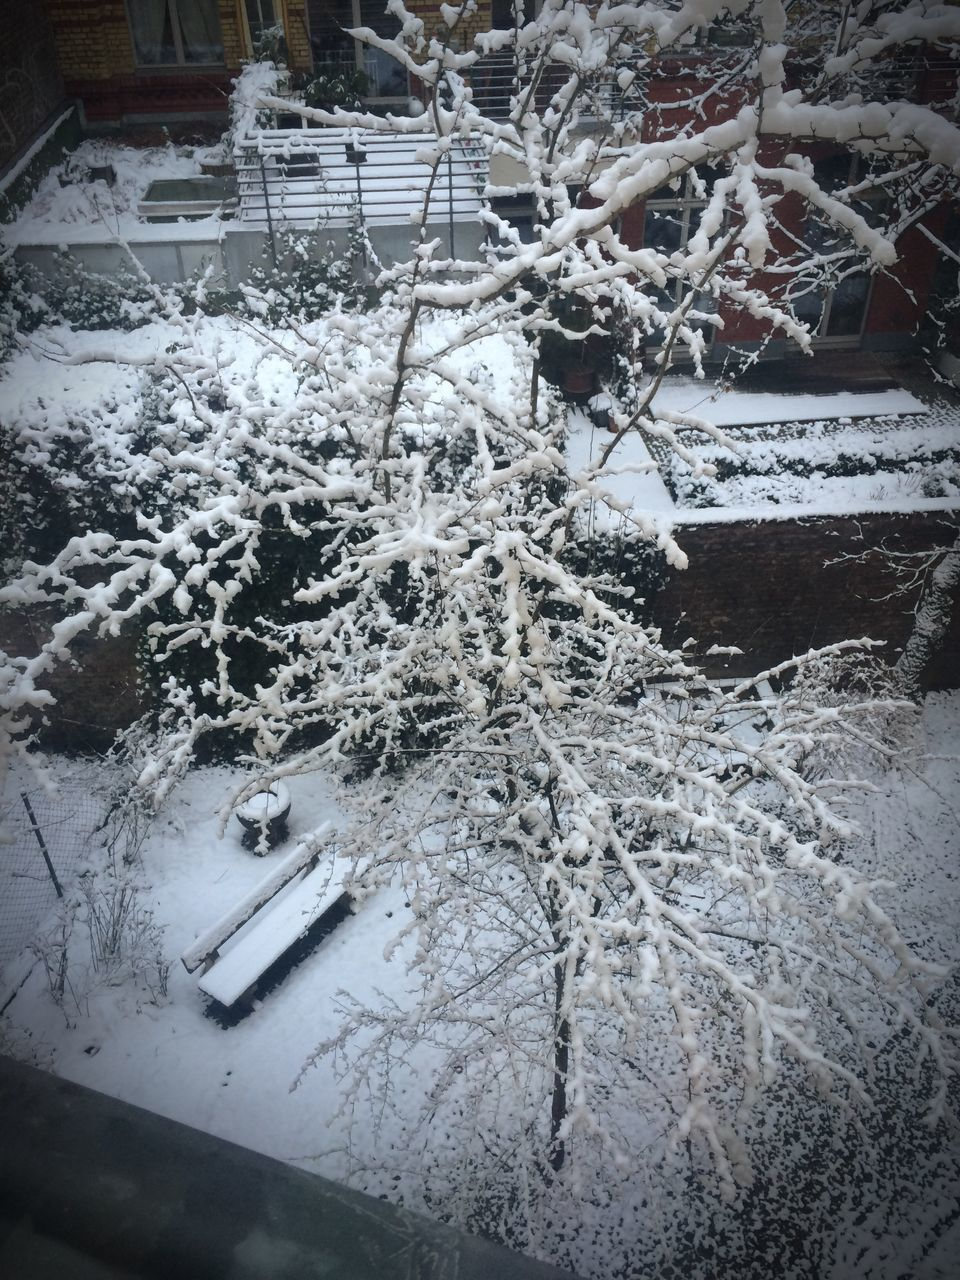 winter, snow, cold temperature, no people, day, indoors, close-up, nature